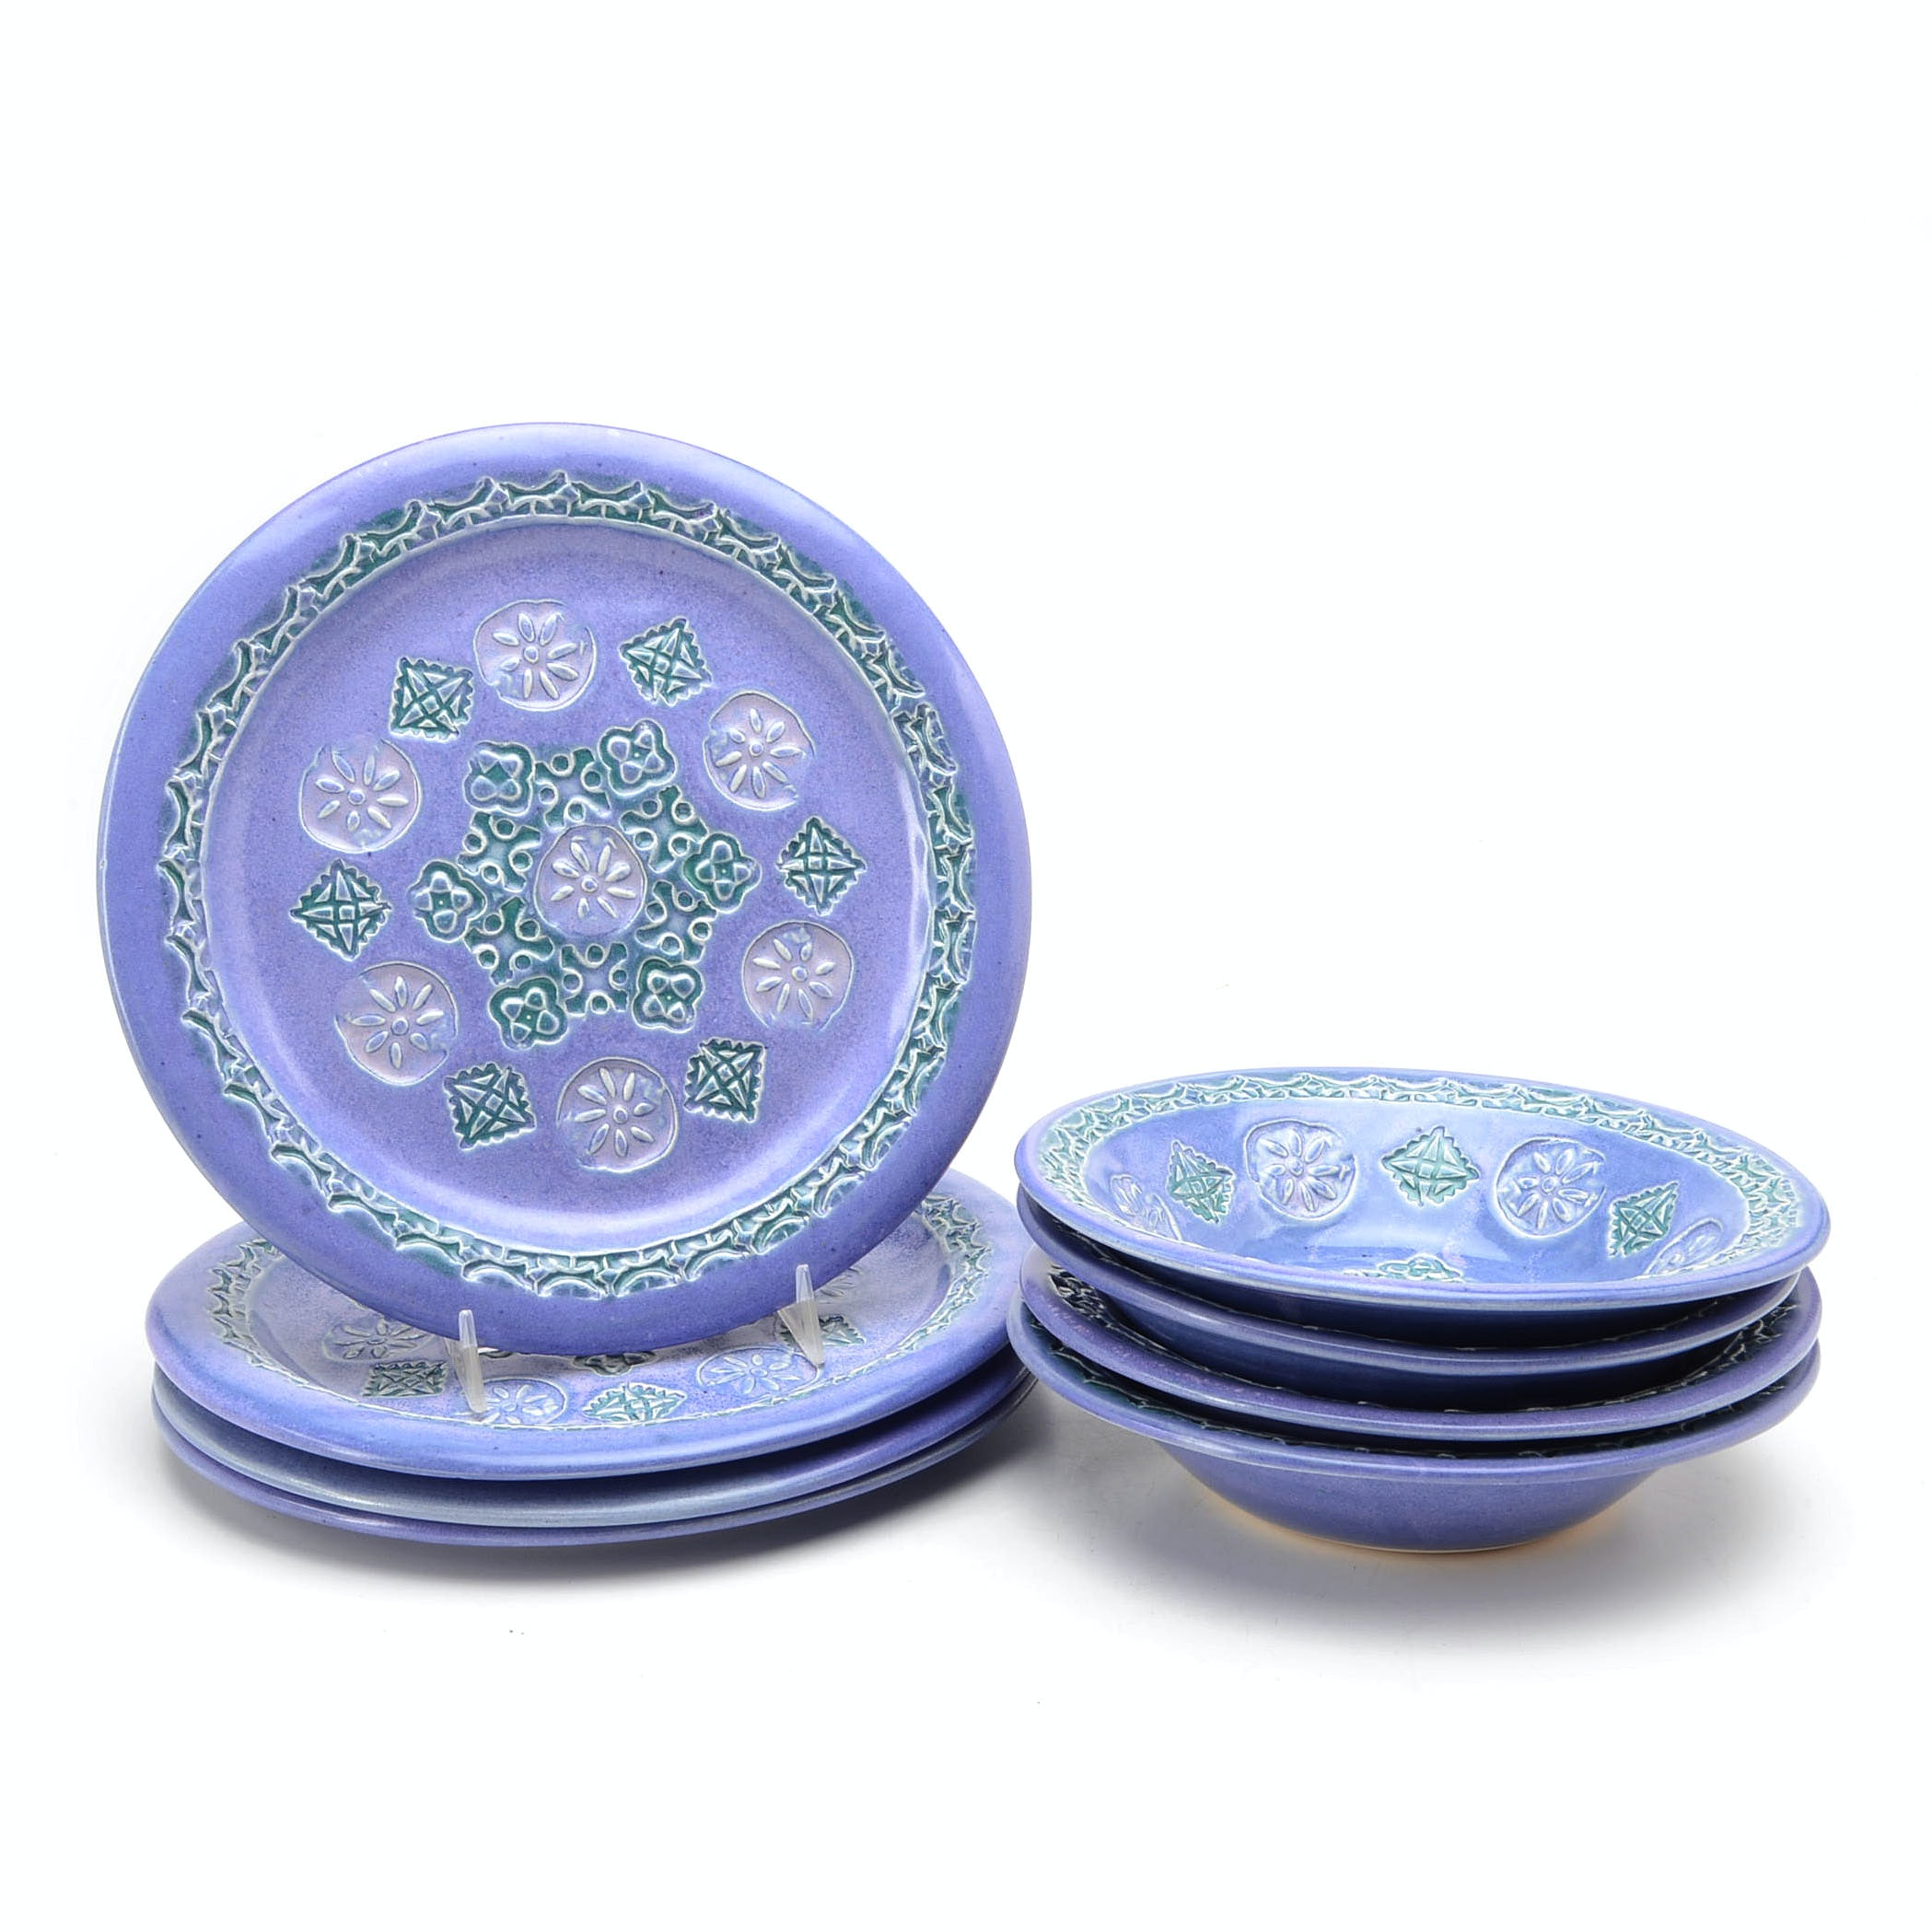 Artisan Signed Ceramic Bowls and Plates